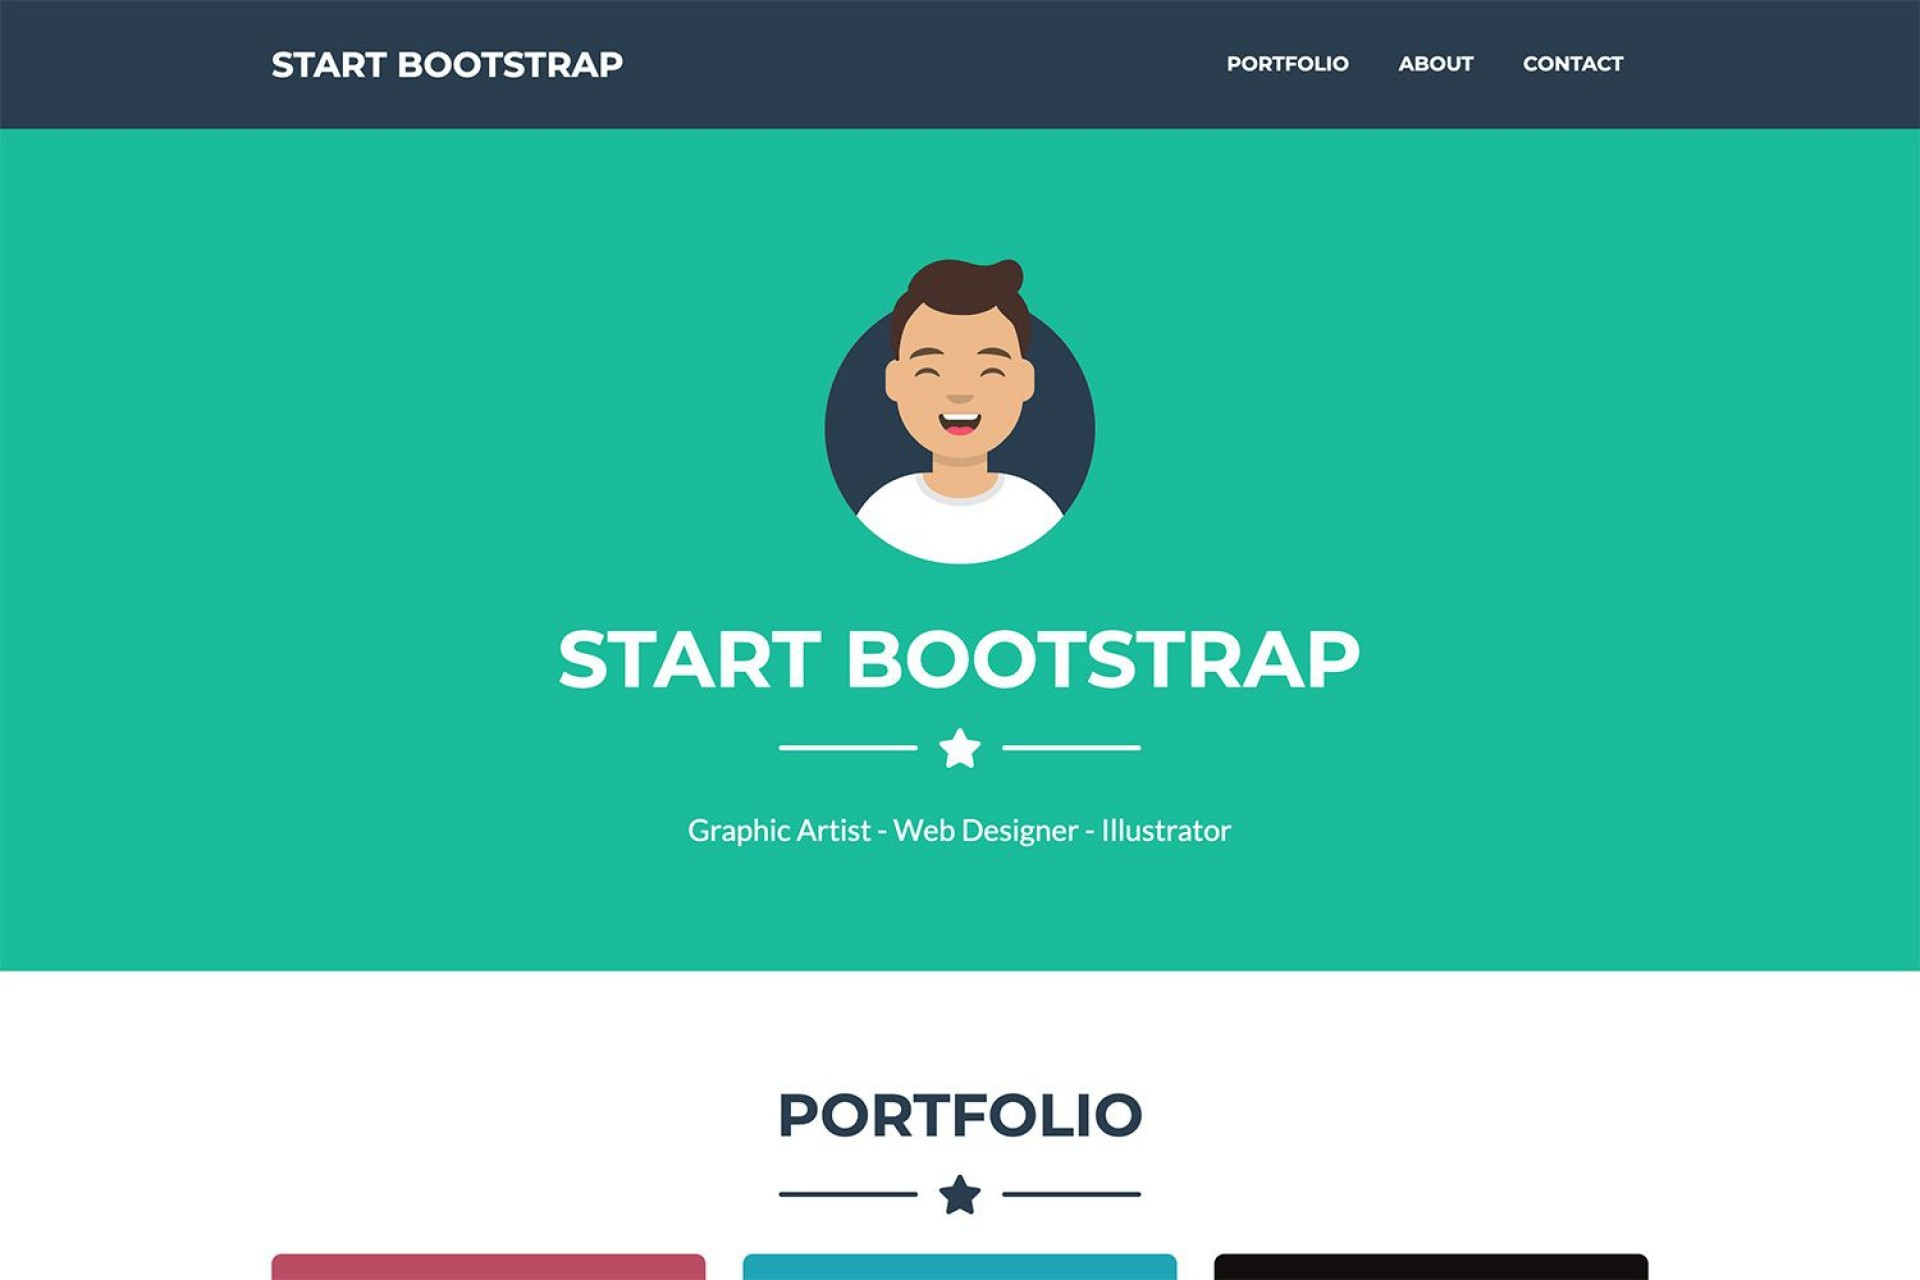 004 Phenomenal Bootstrap Portfolio Template Free High Definition  Download Website 41920